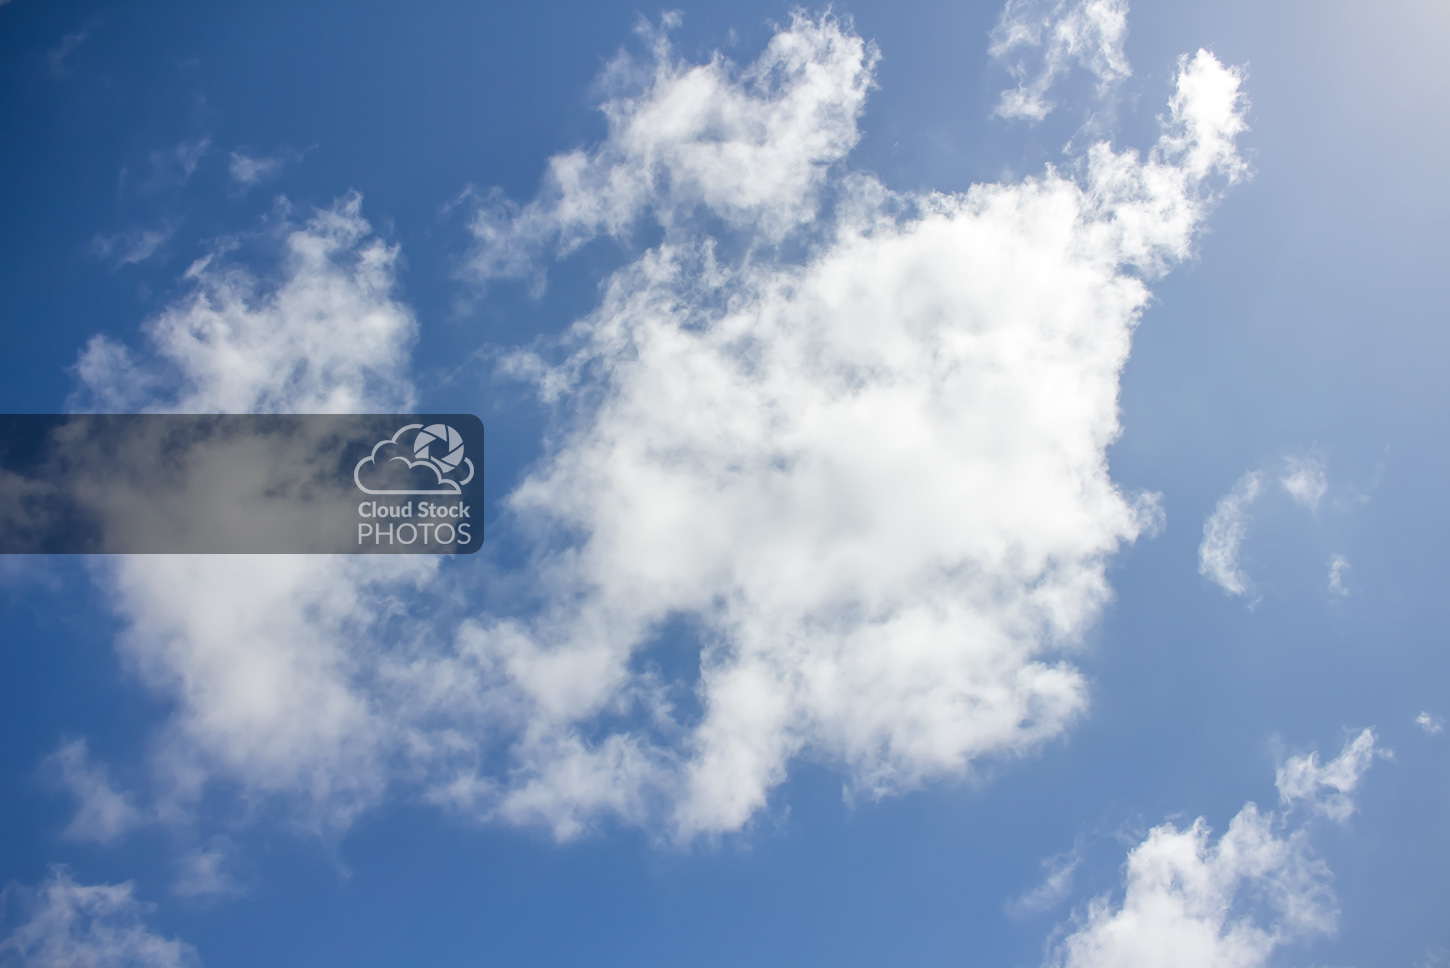 Stock photo of two large altocumulus clouds during the summer. The sun's indirect glow illuminates the image from the top-right side of the image towards the center. And a vivid blue sky is visible on the left.